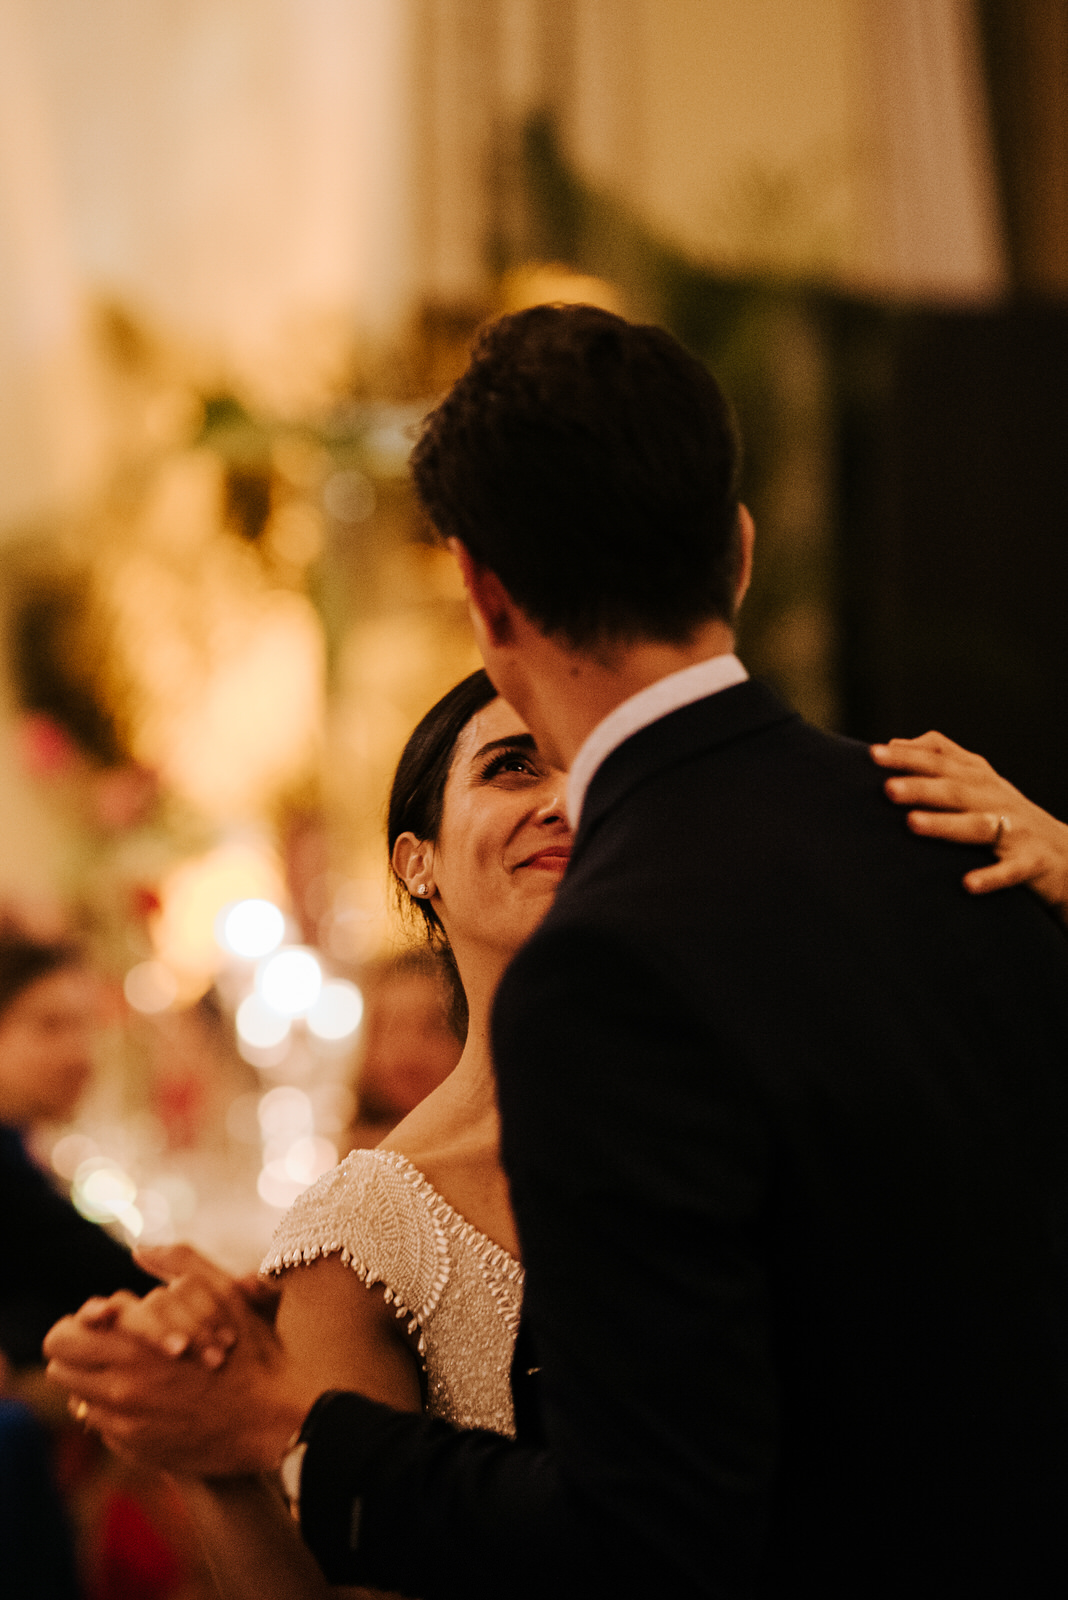 Bride dances with family member as she looks at him very happily